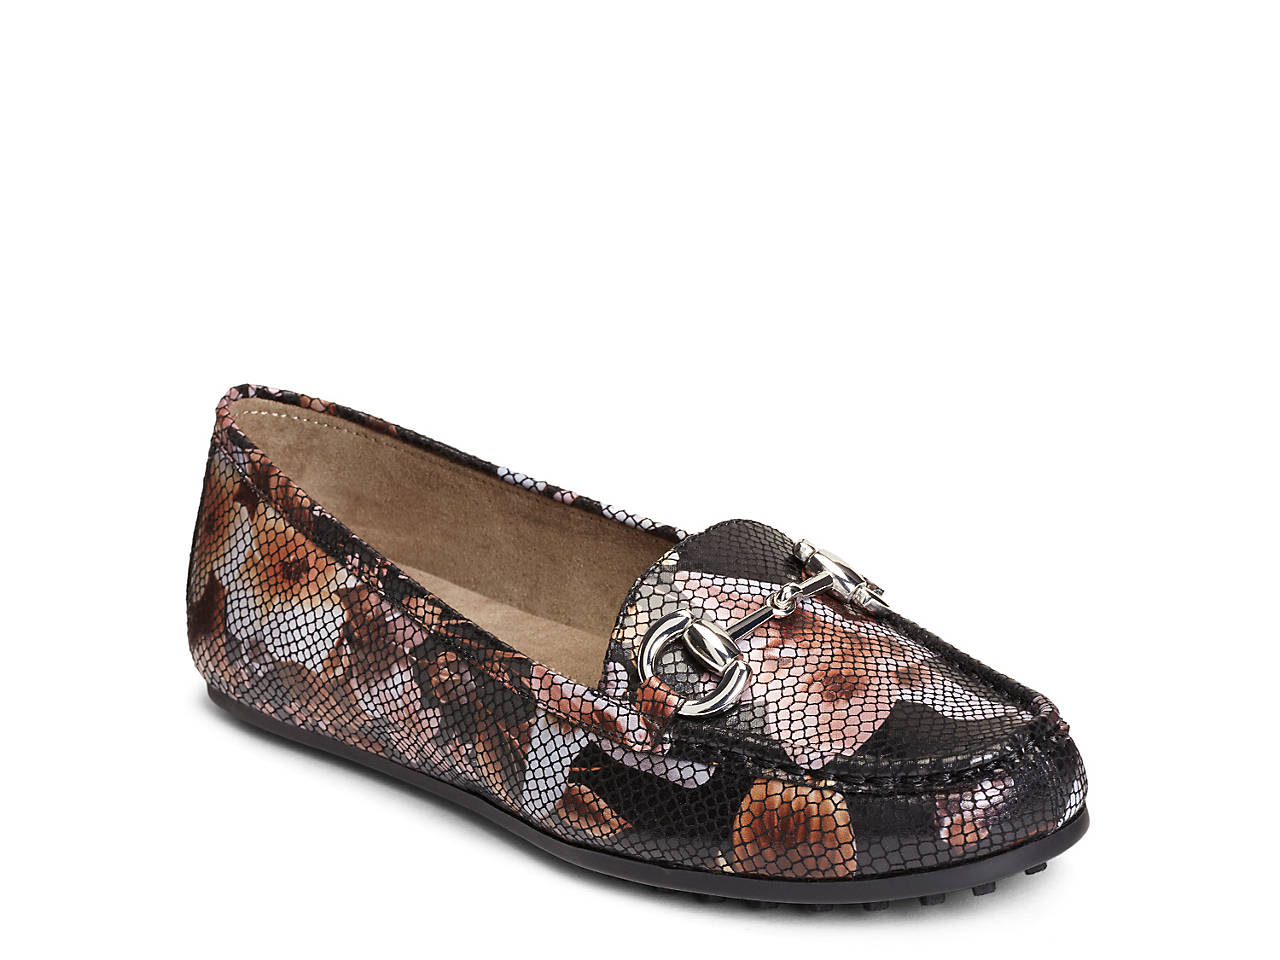 a51c1bfdcf1 A2 by Aerosoles Drive Back Loafer Women s Shoes